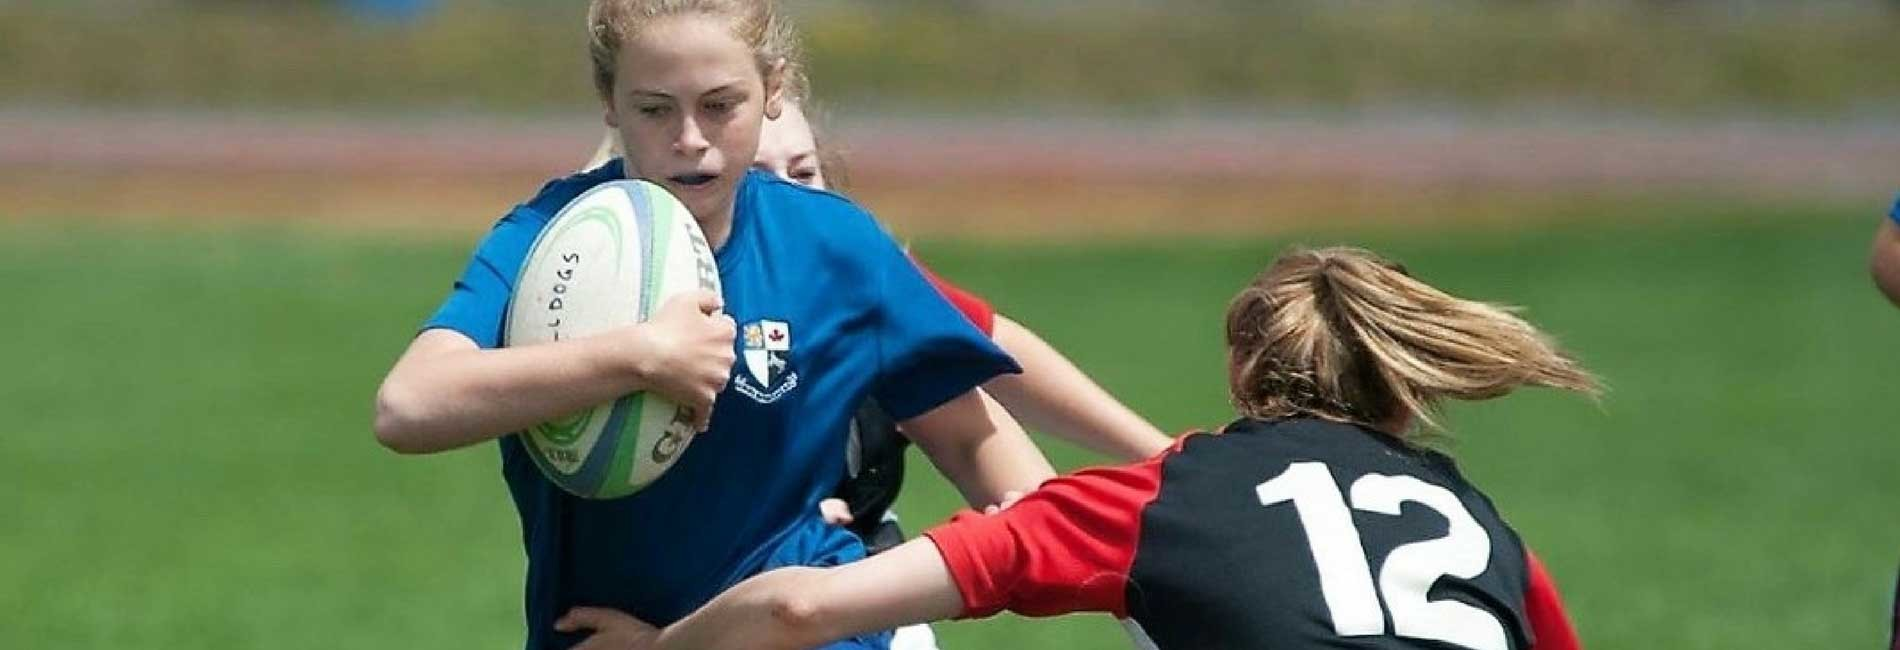 Standard swscd   rugby  2   activity banner image  1900x650